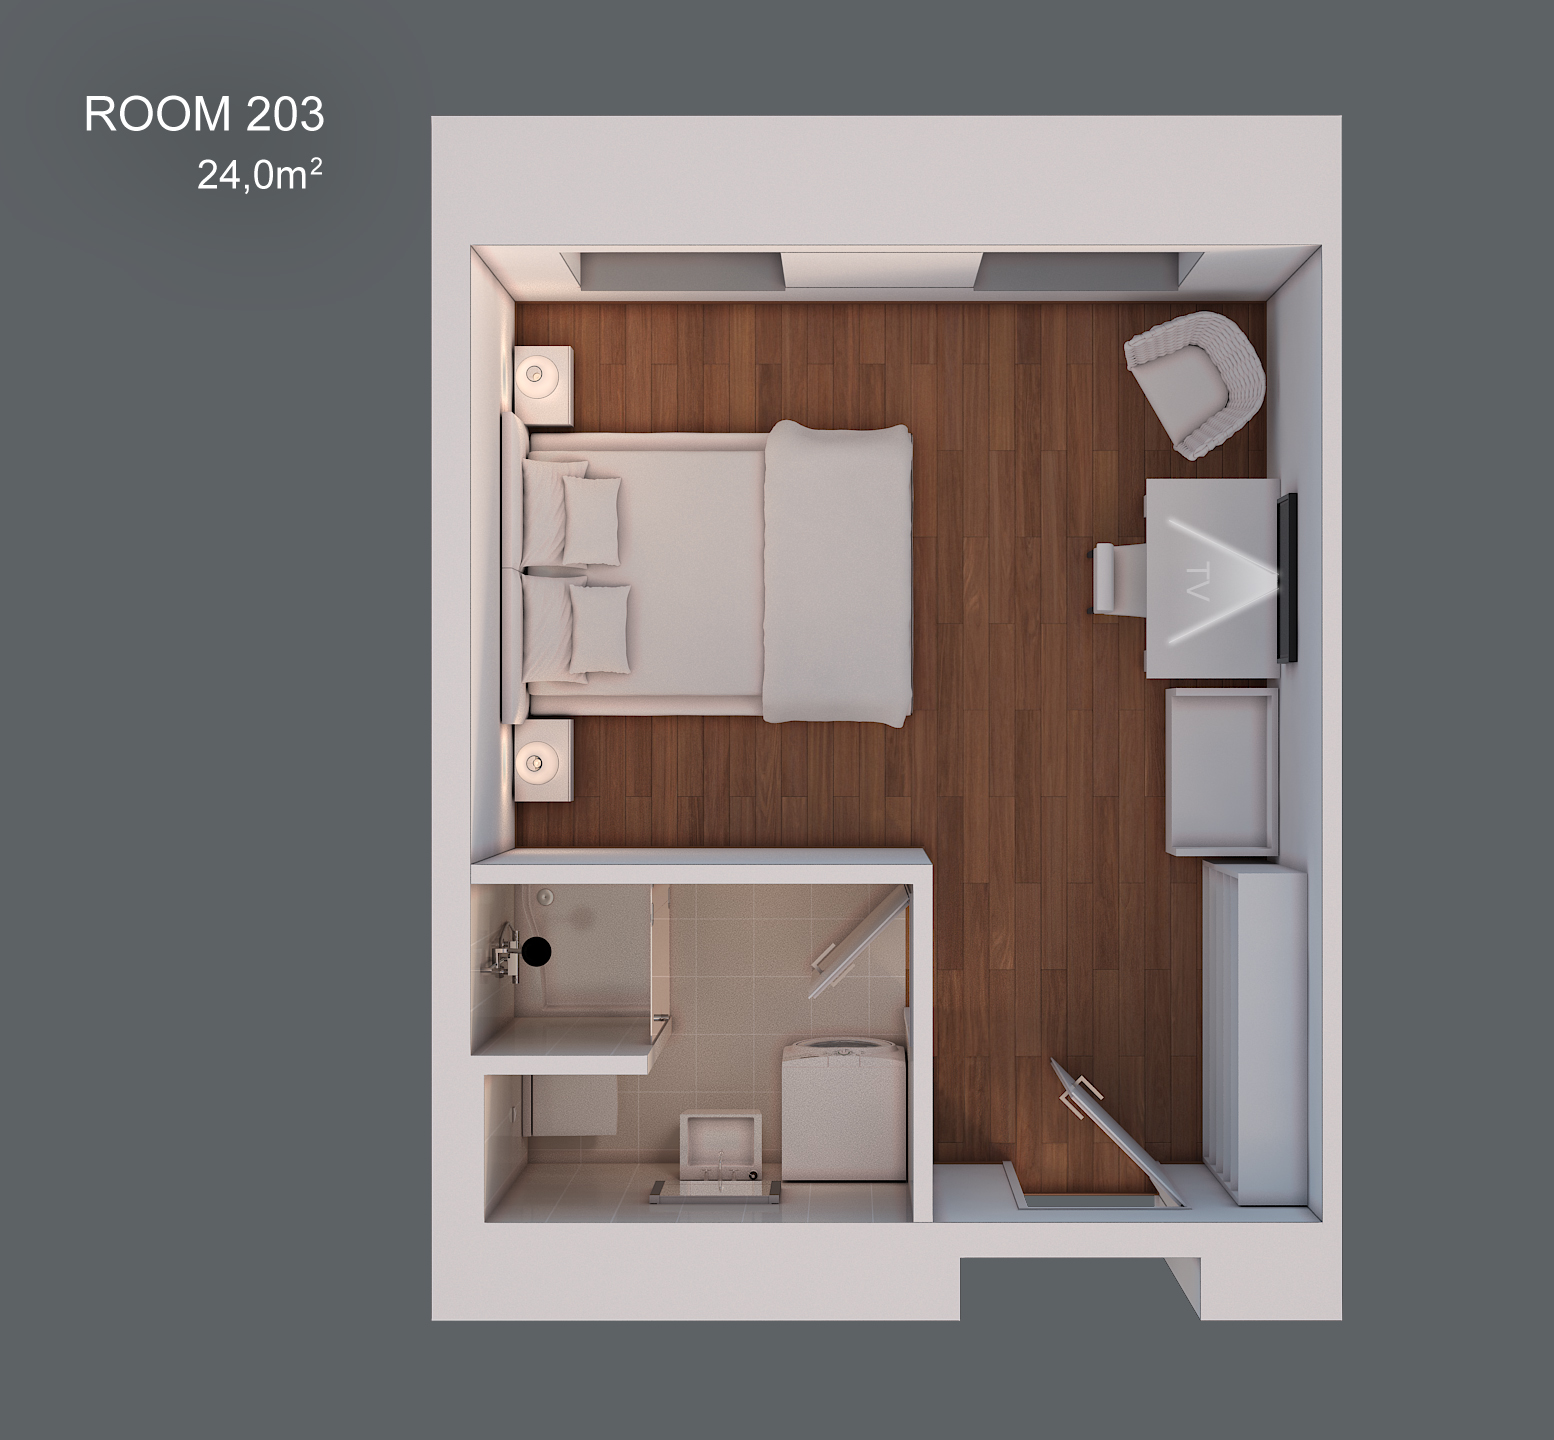 Room 203 layout